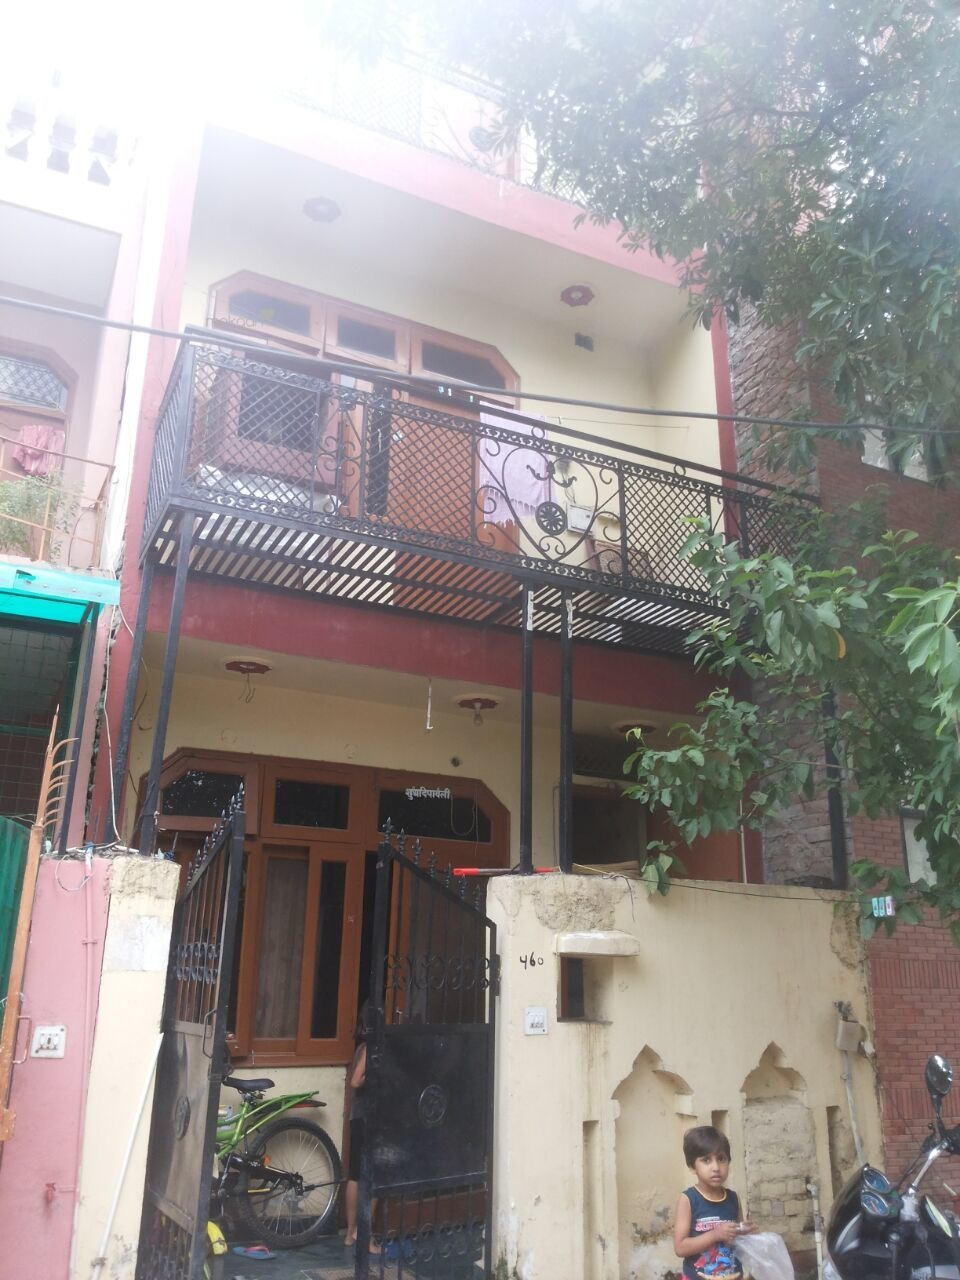 1291 sq ft 2BHK 2BHK+2T (1,291 sq ft) + Store Room Property By ALFATECH REALTORS In Project, Delta I